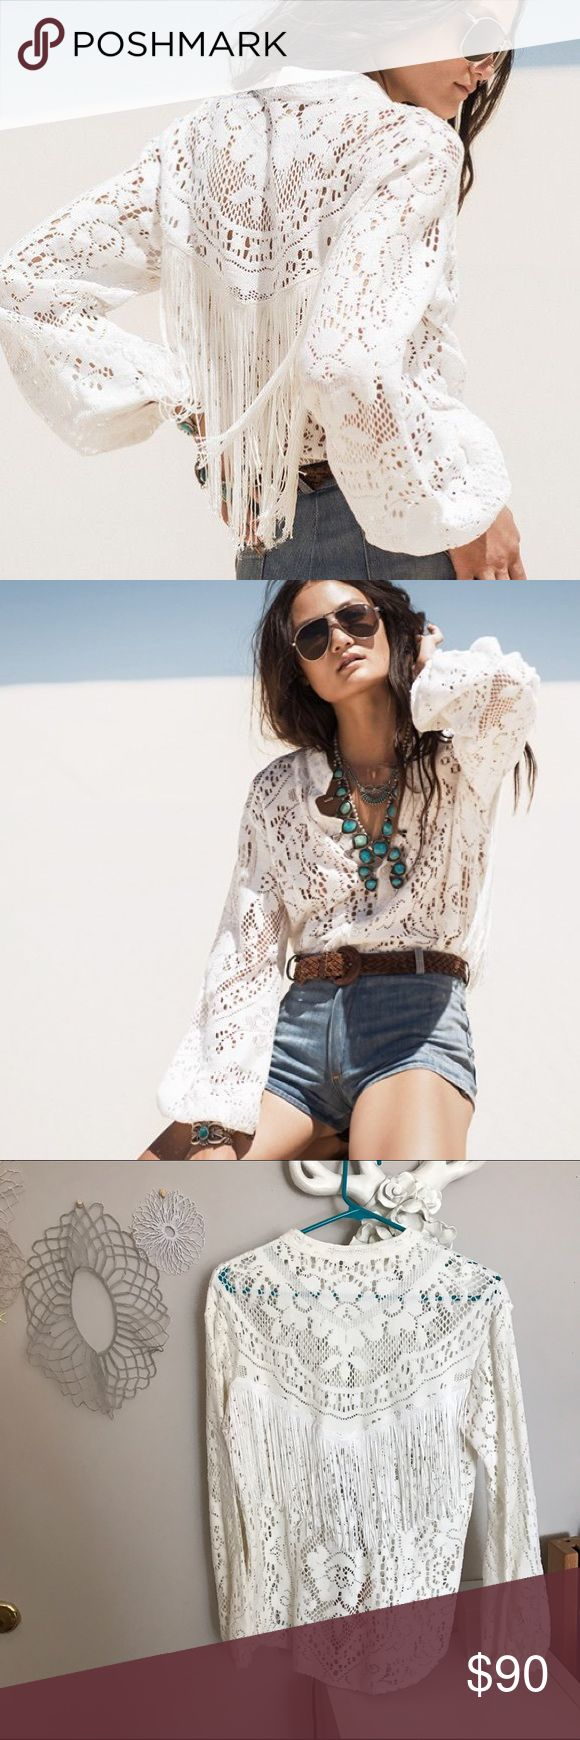 Spell Fringe Blouse Spell and the gypsy collective button down fringe crochet top. Worn once Spell & The Gypsy Collective Tops Blouses